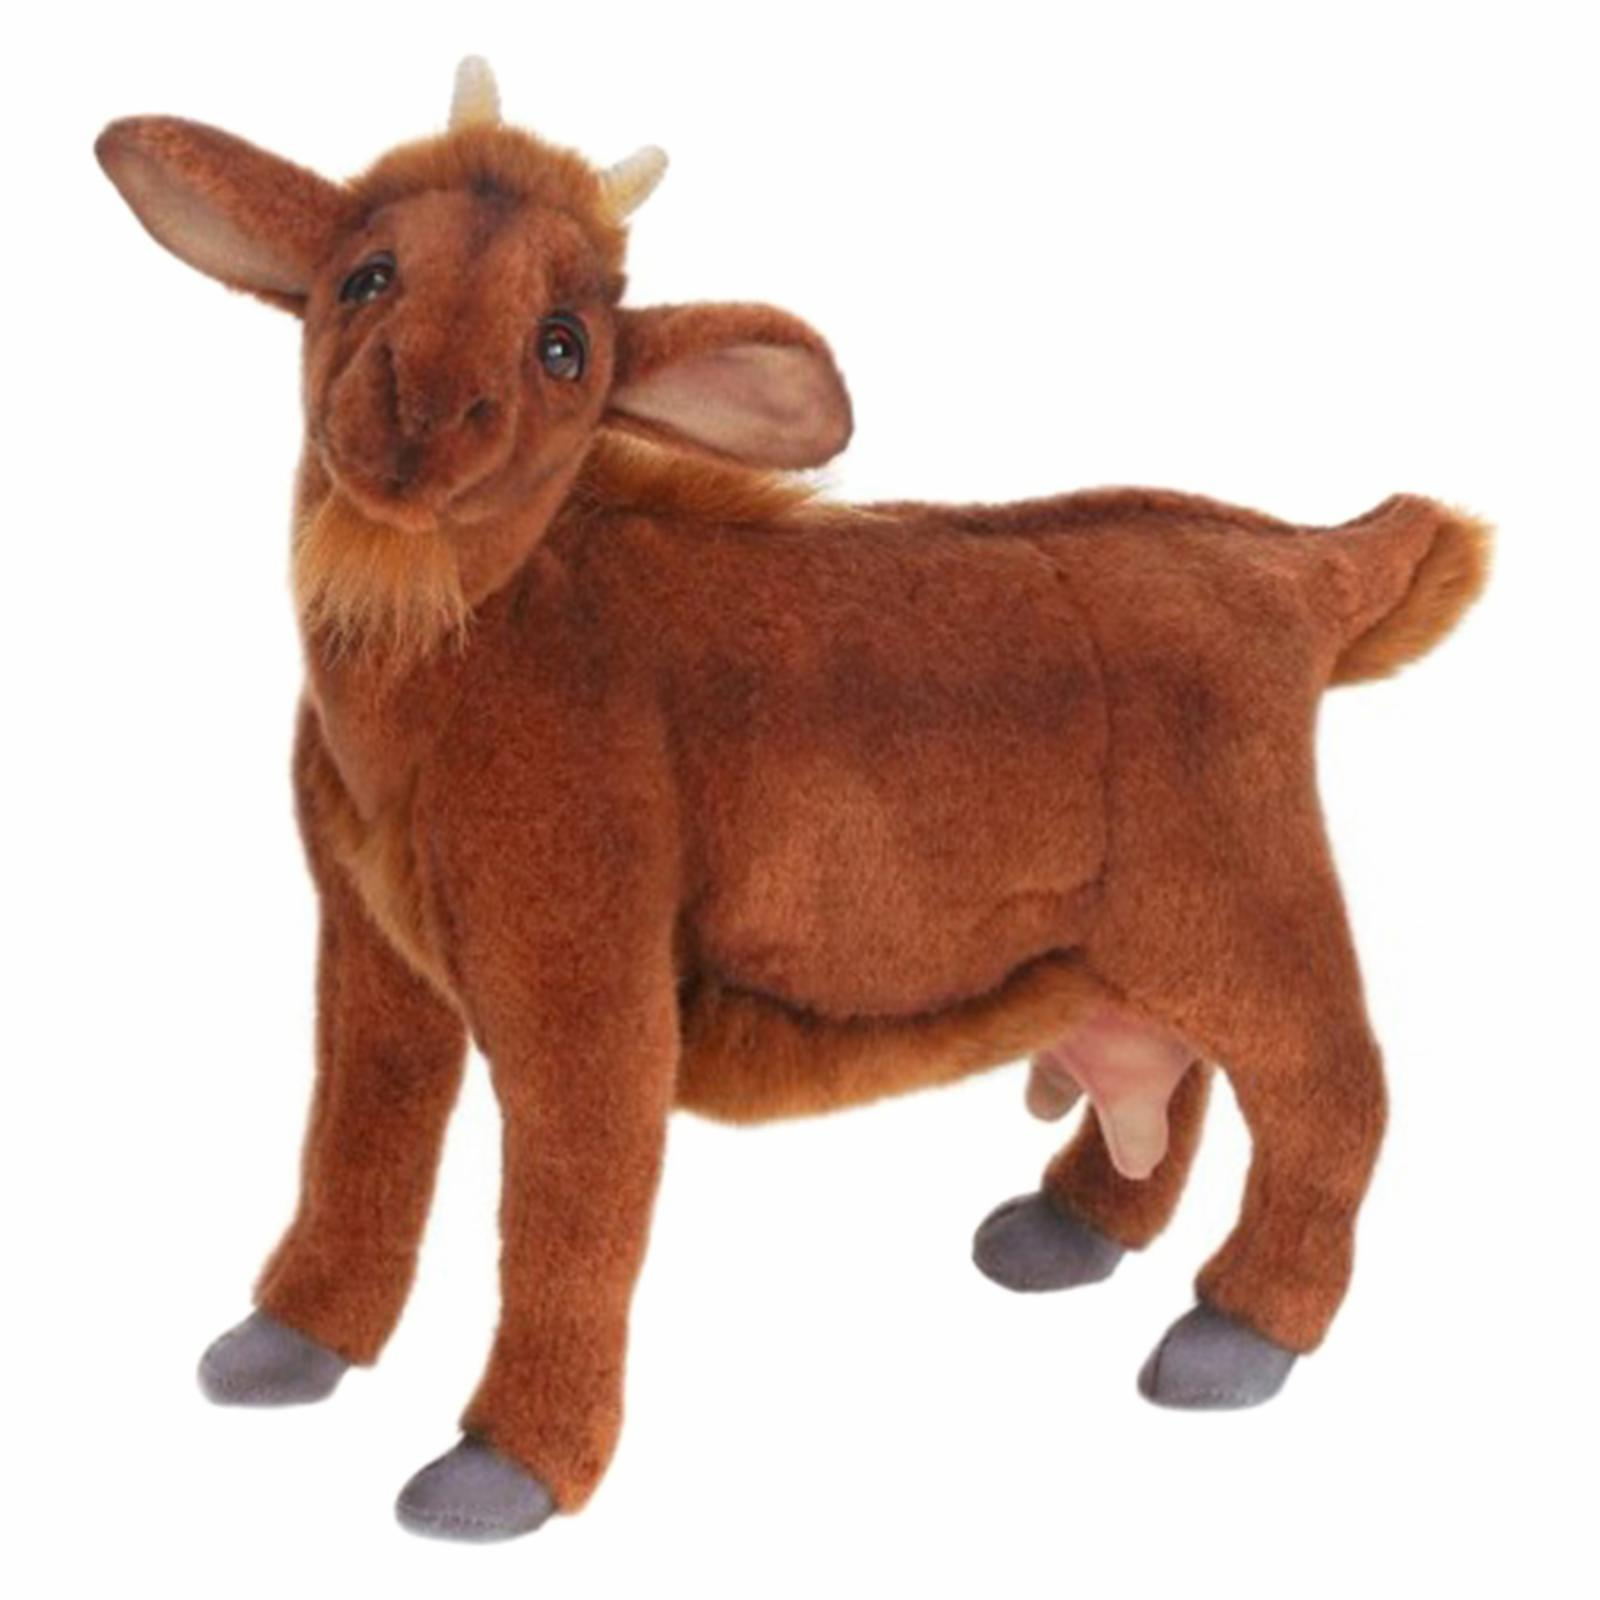 Hansa Brown Goat Plush Toy - 190370